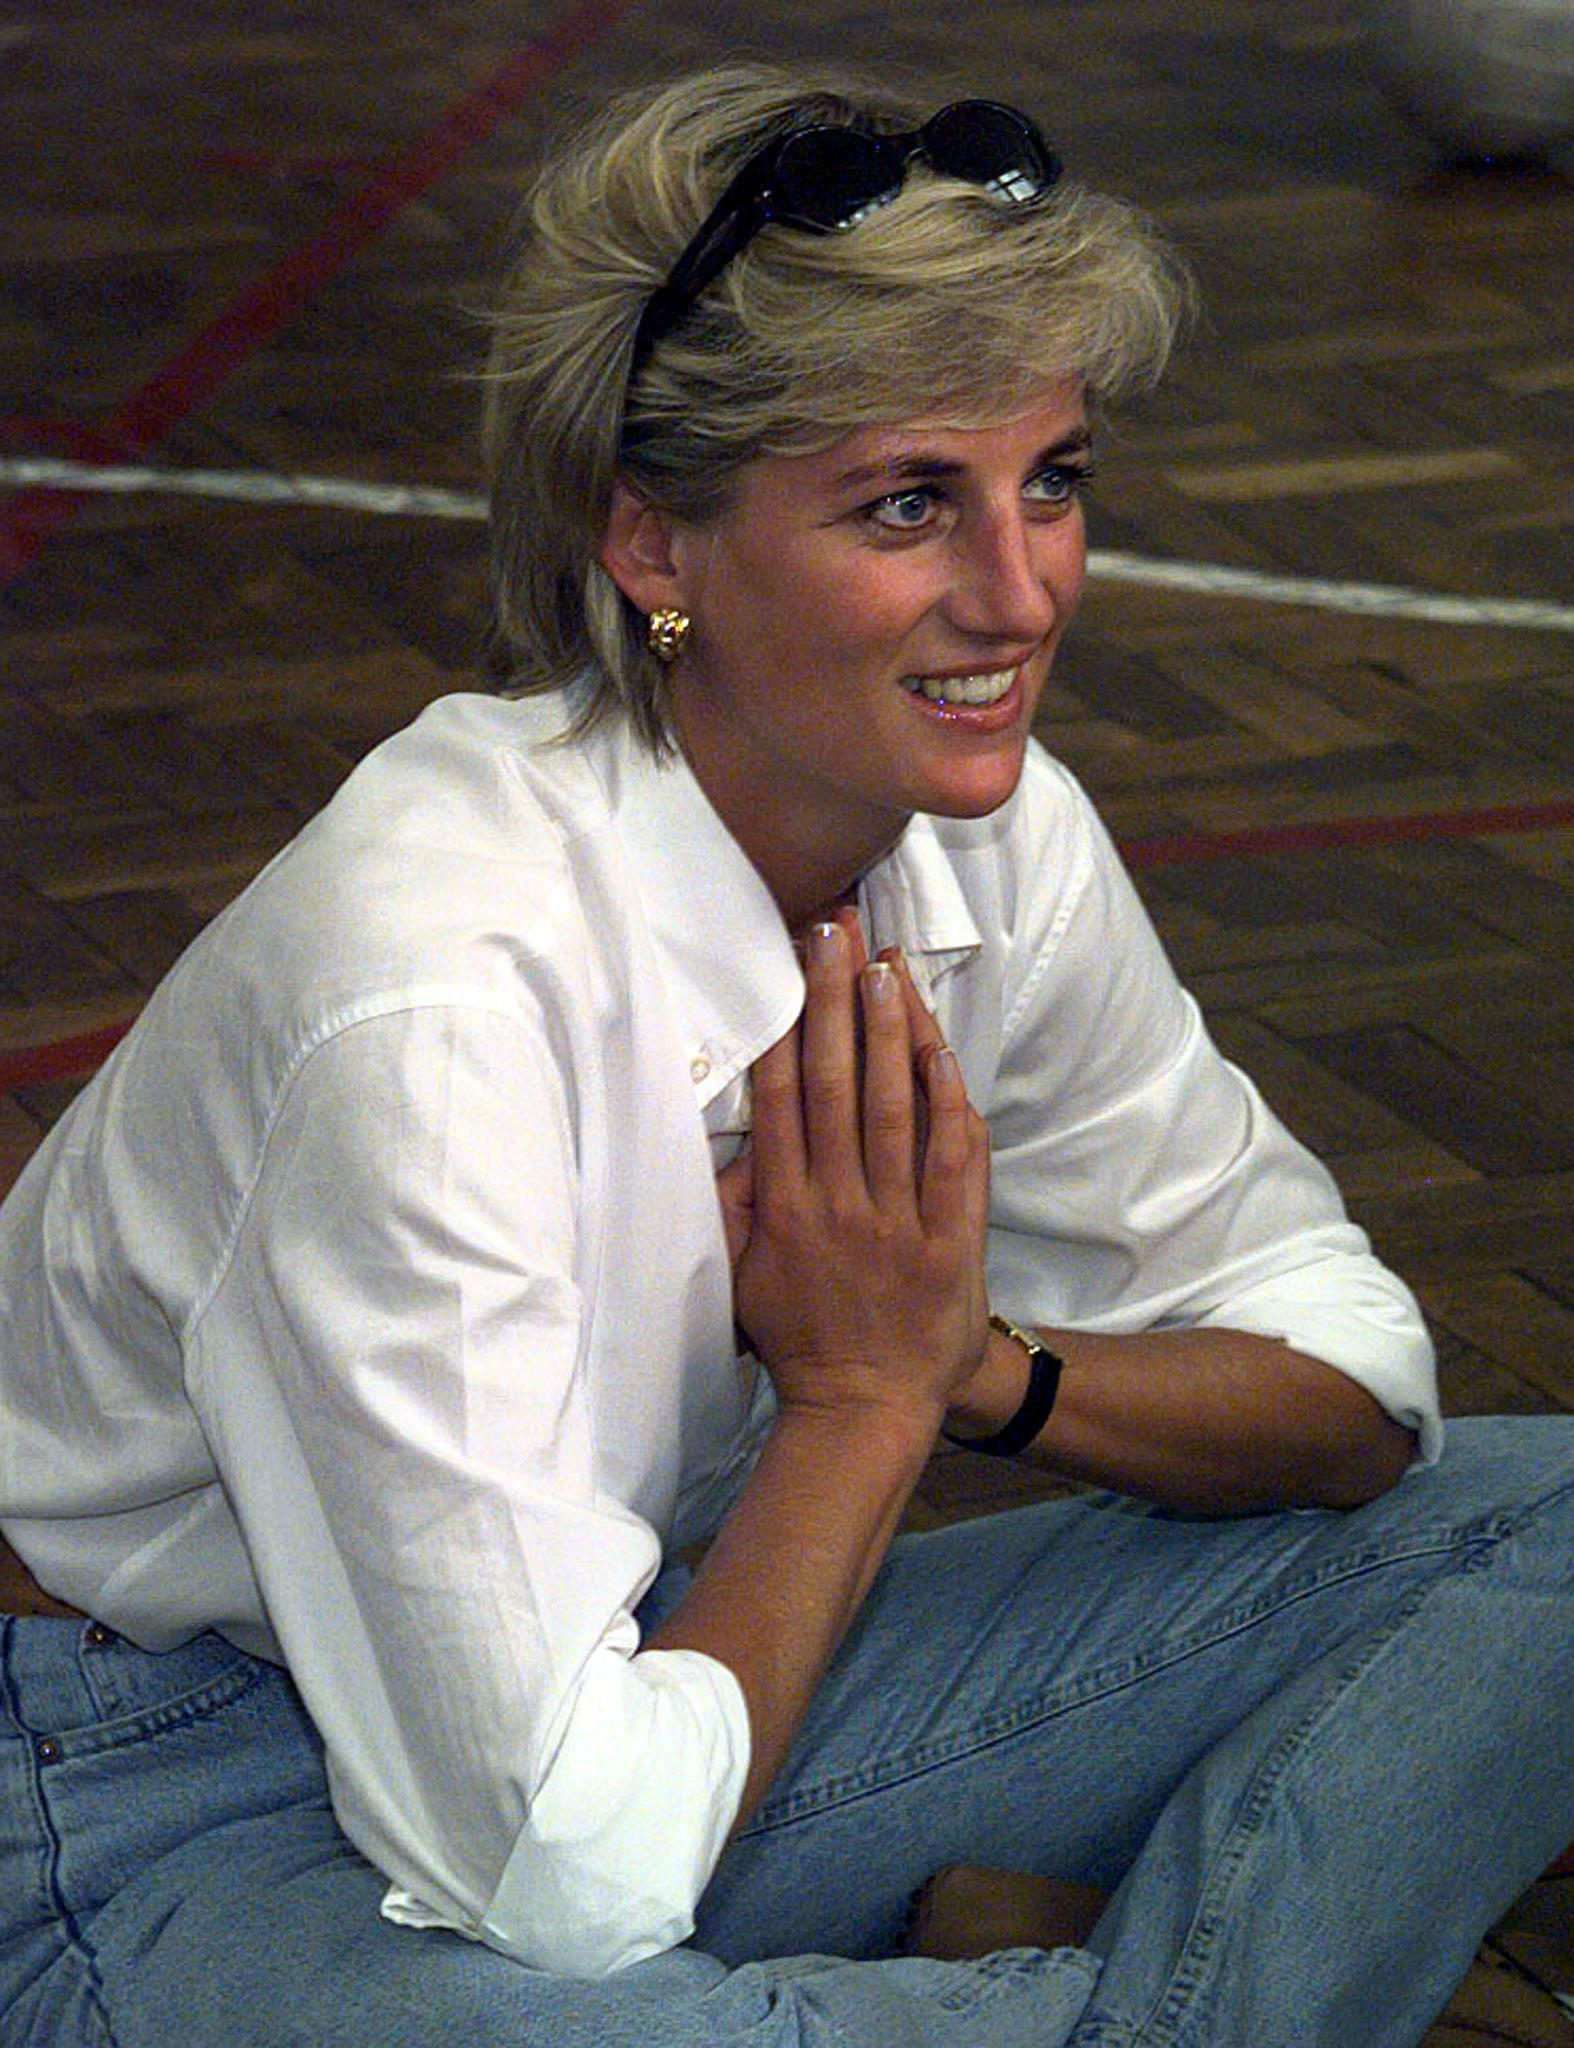 The charities Princess Diana supported included Great Ormond Street Hospital, the National Aids Trust, the Leprosy Mission, Royal Marsden Hospital, English National Ballet, and Centrepoint, which helps homeless youth. Photo by Ian Waldie/Reuters